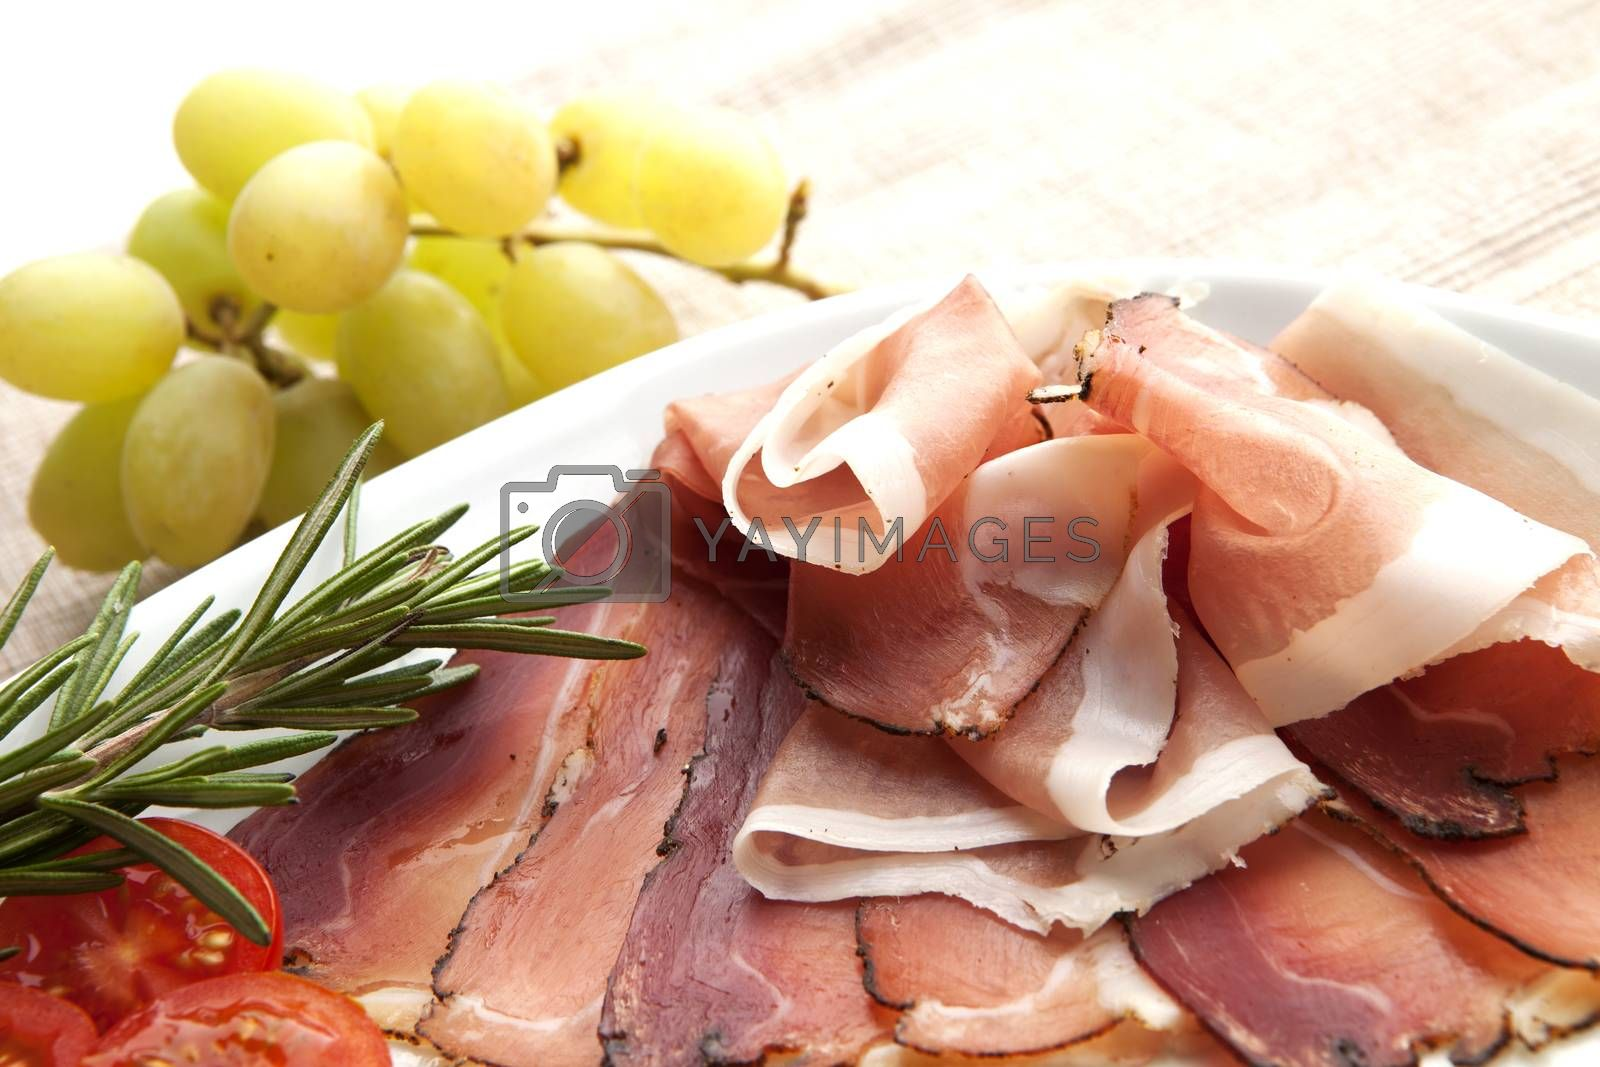 Delicious prosciutto plate with tomatos, grapes and rosemary.